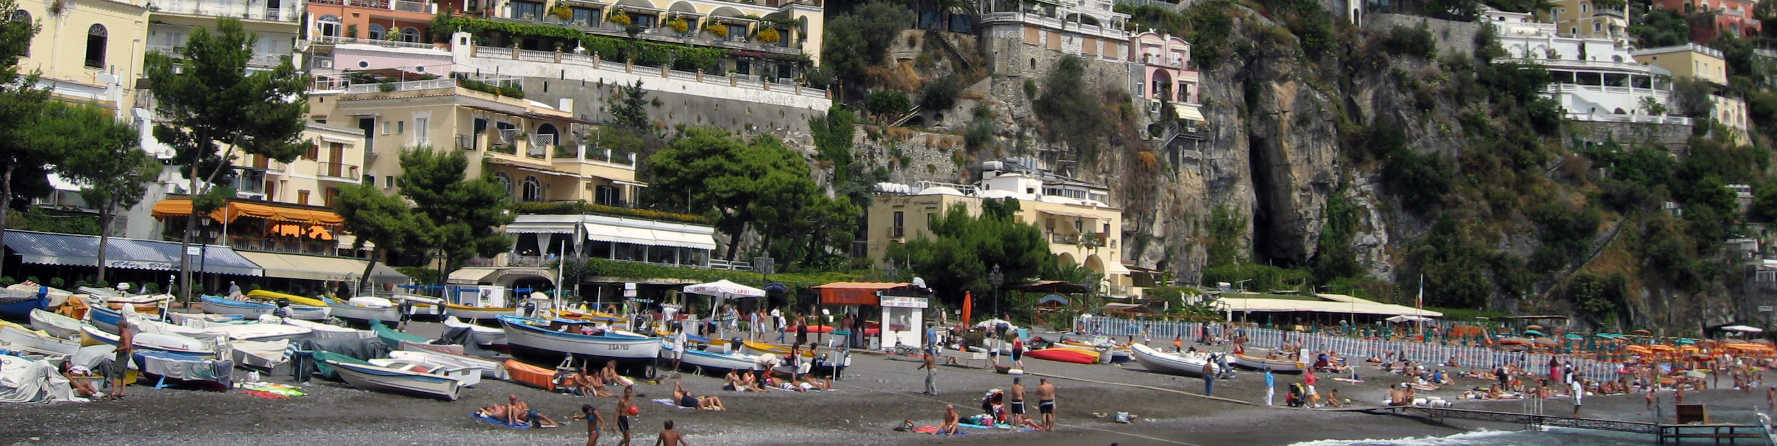 What is Positano famous for?